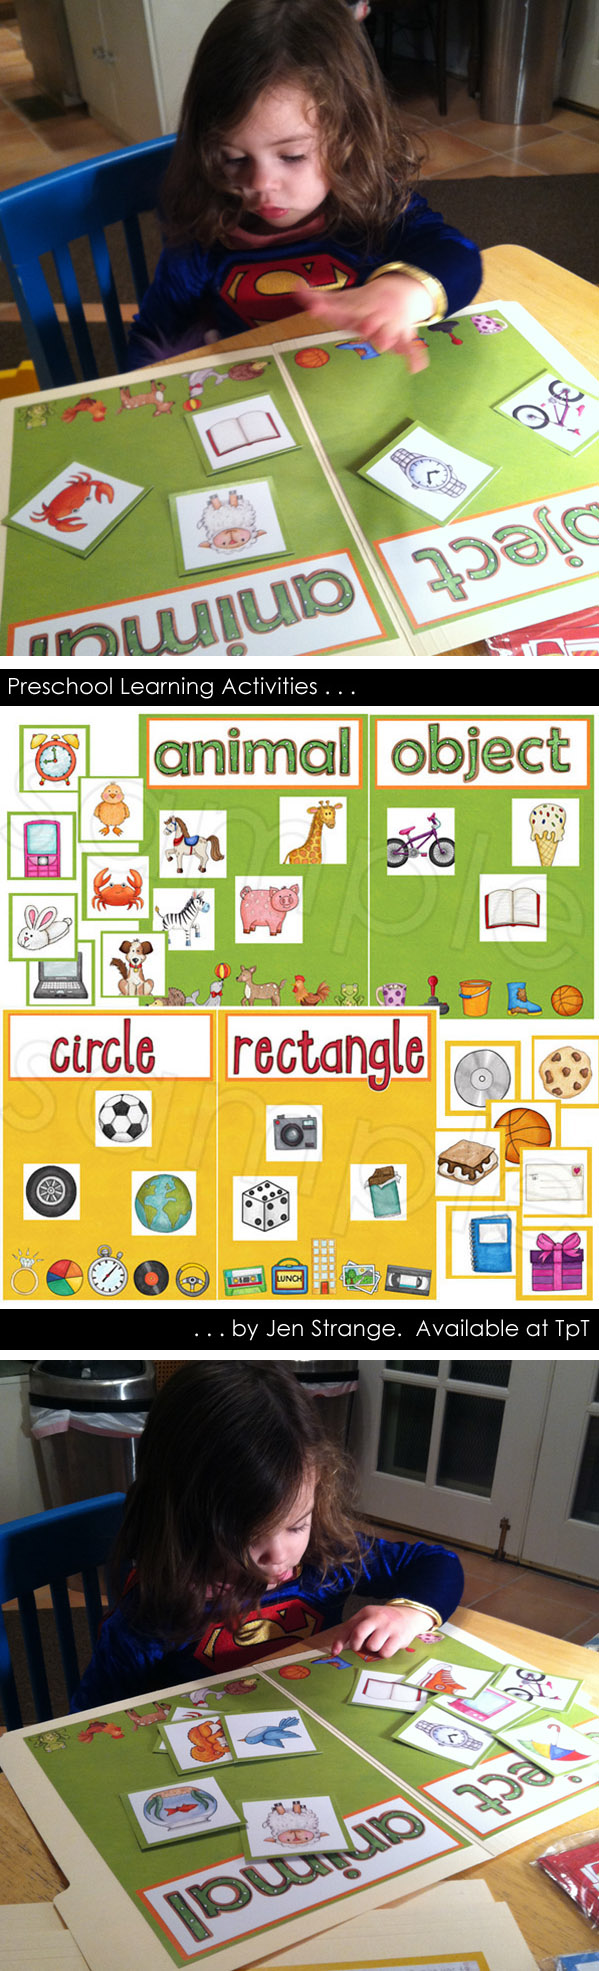 Preschool Games and Activities - colors, counting, shapes, and more ...